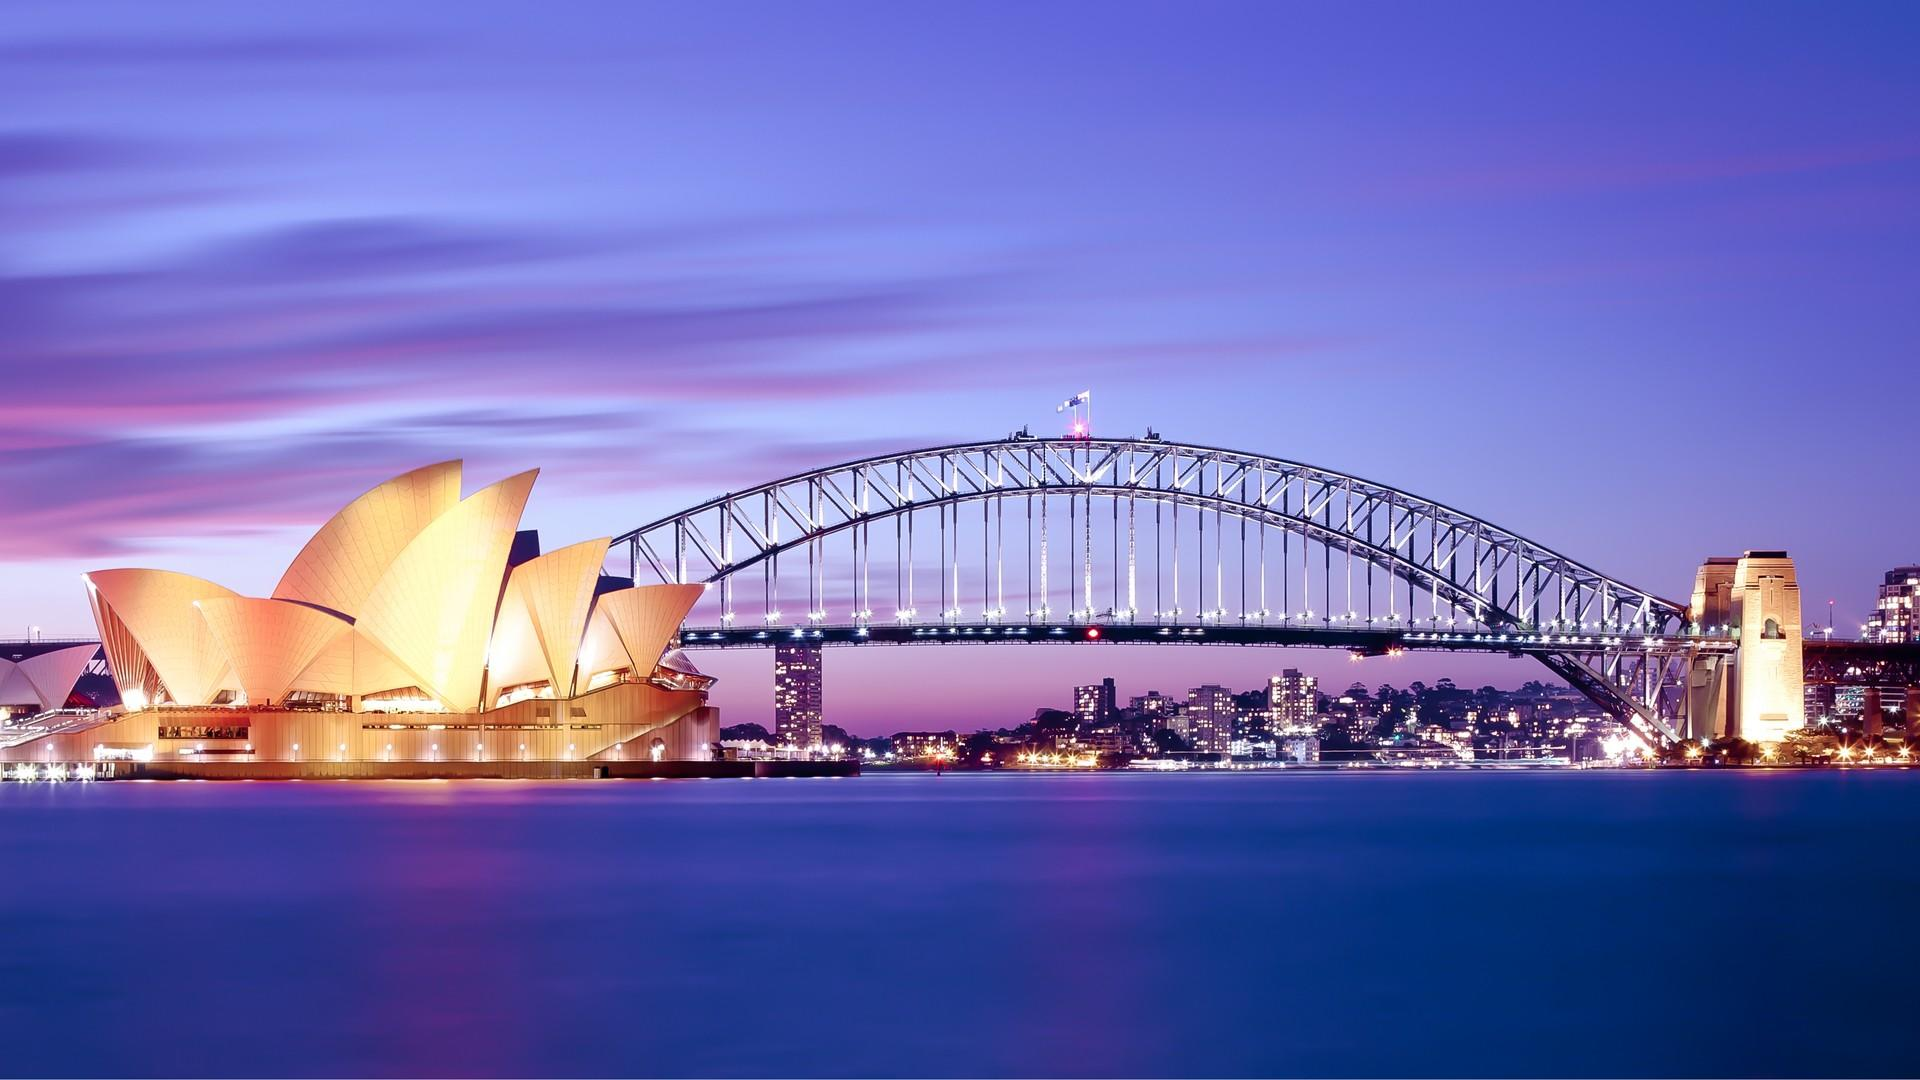 An Image of Sydney Australia's Harbour Front Opera House. Sydney is where the head office of People Builders Training and Coaching solutions is located.